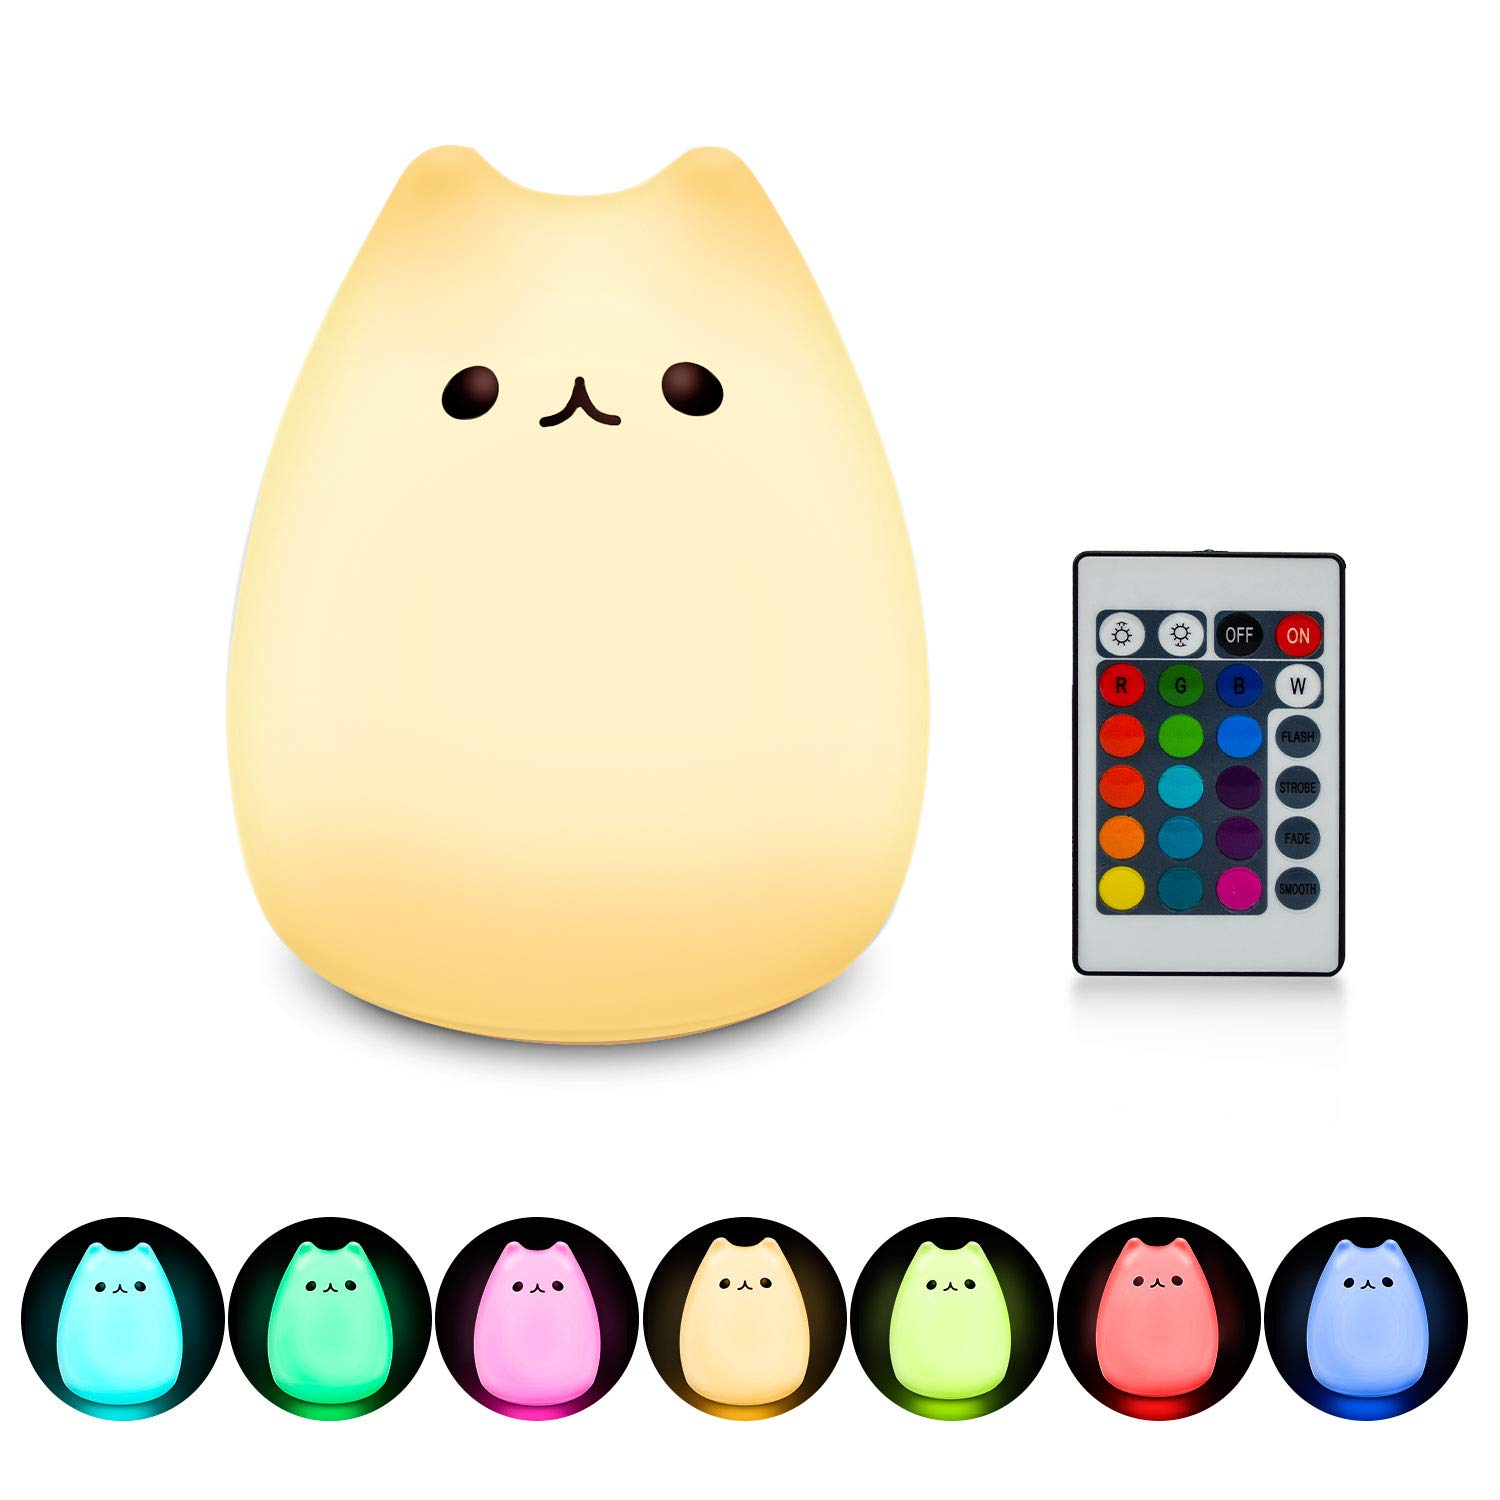 Mystery Cat Night Light, Kids Toy Nightlight with Remote Control, Soft Silicone LED Baby Nursery Sleep Relaxing Tap Lamps, Decorative Desk Lamp for Bedroom